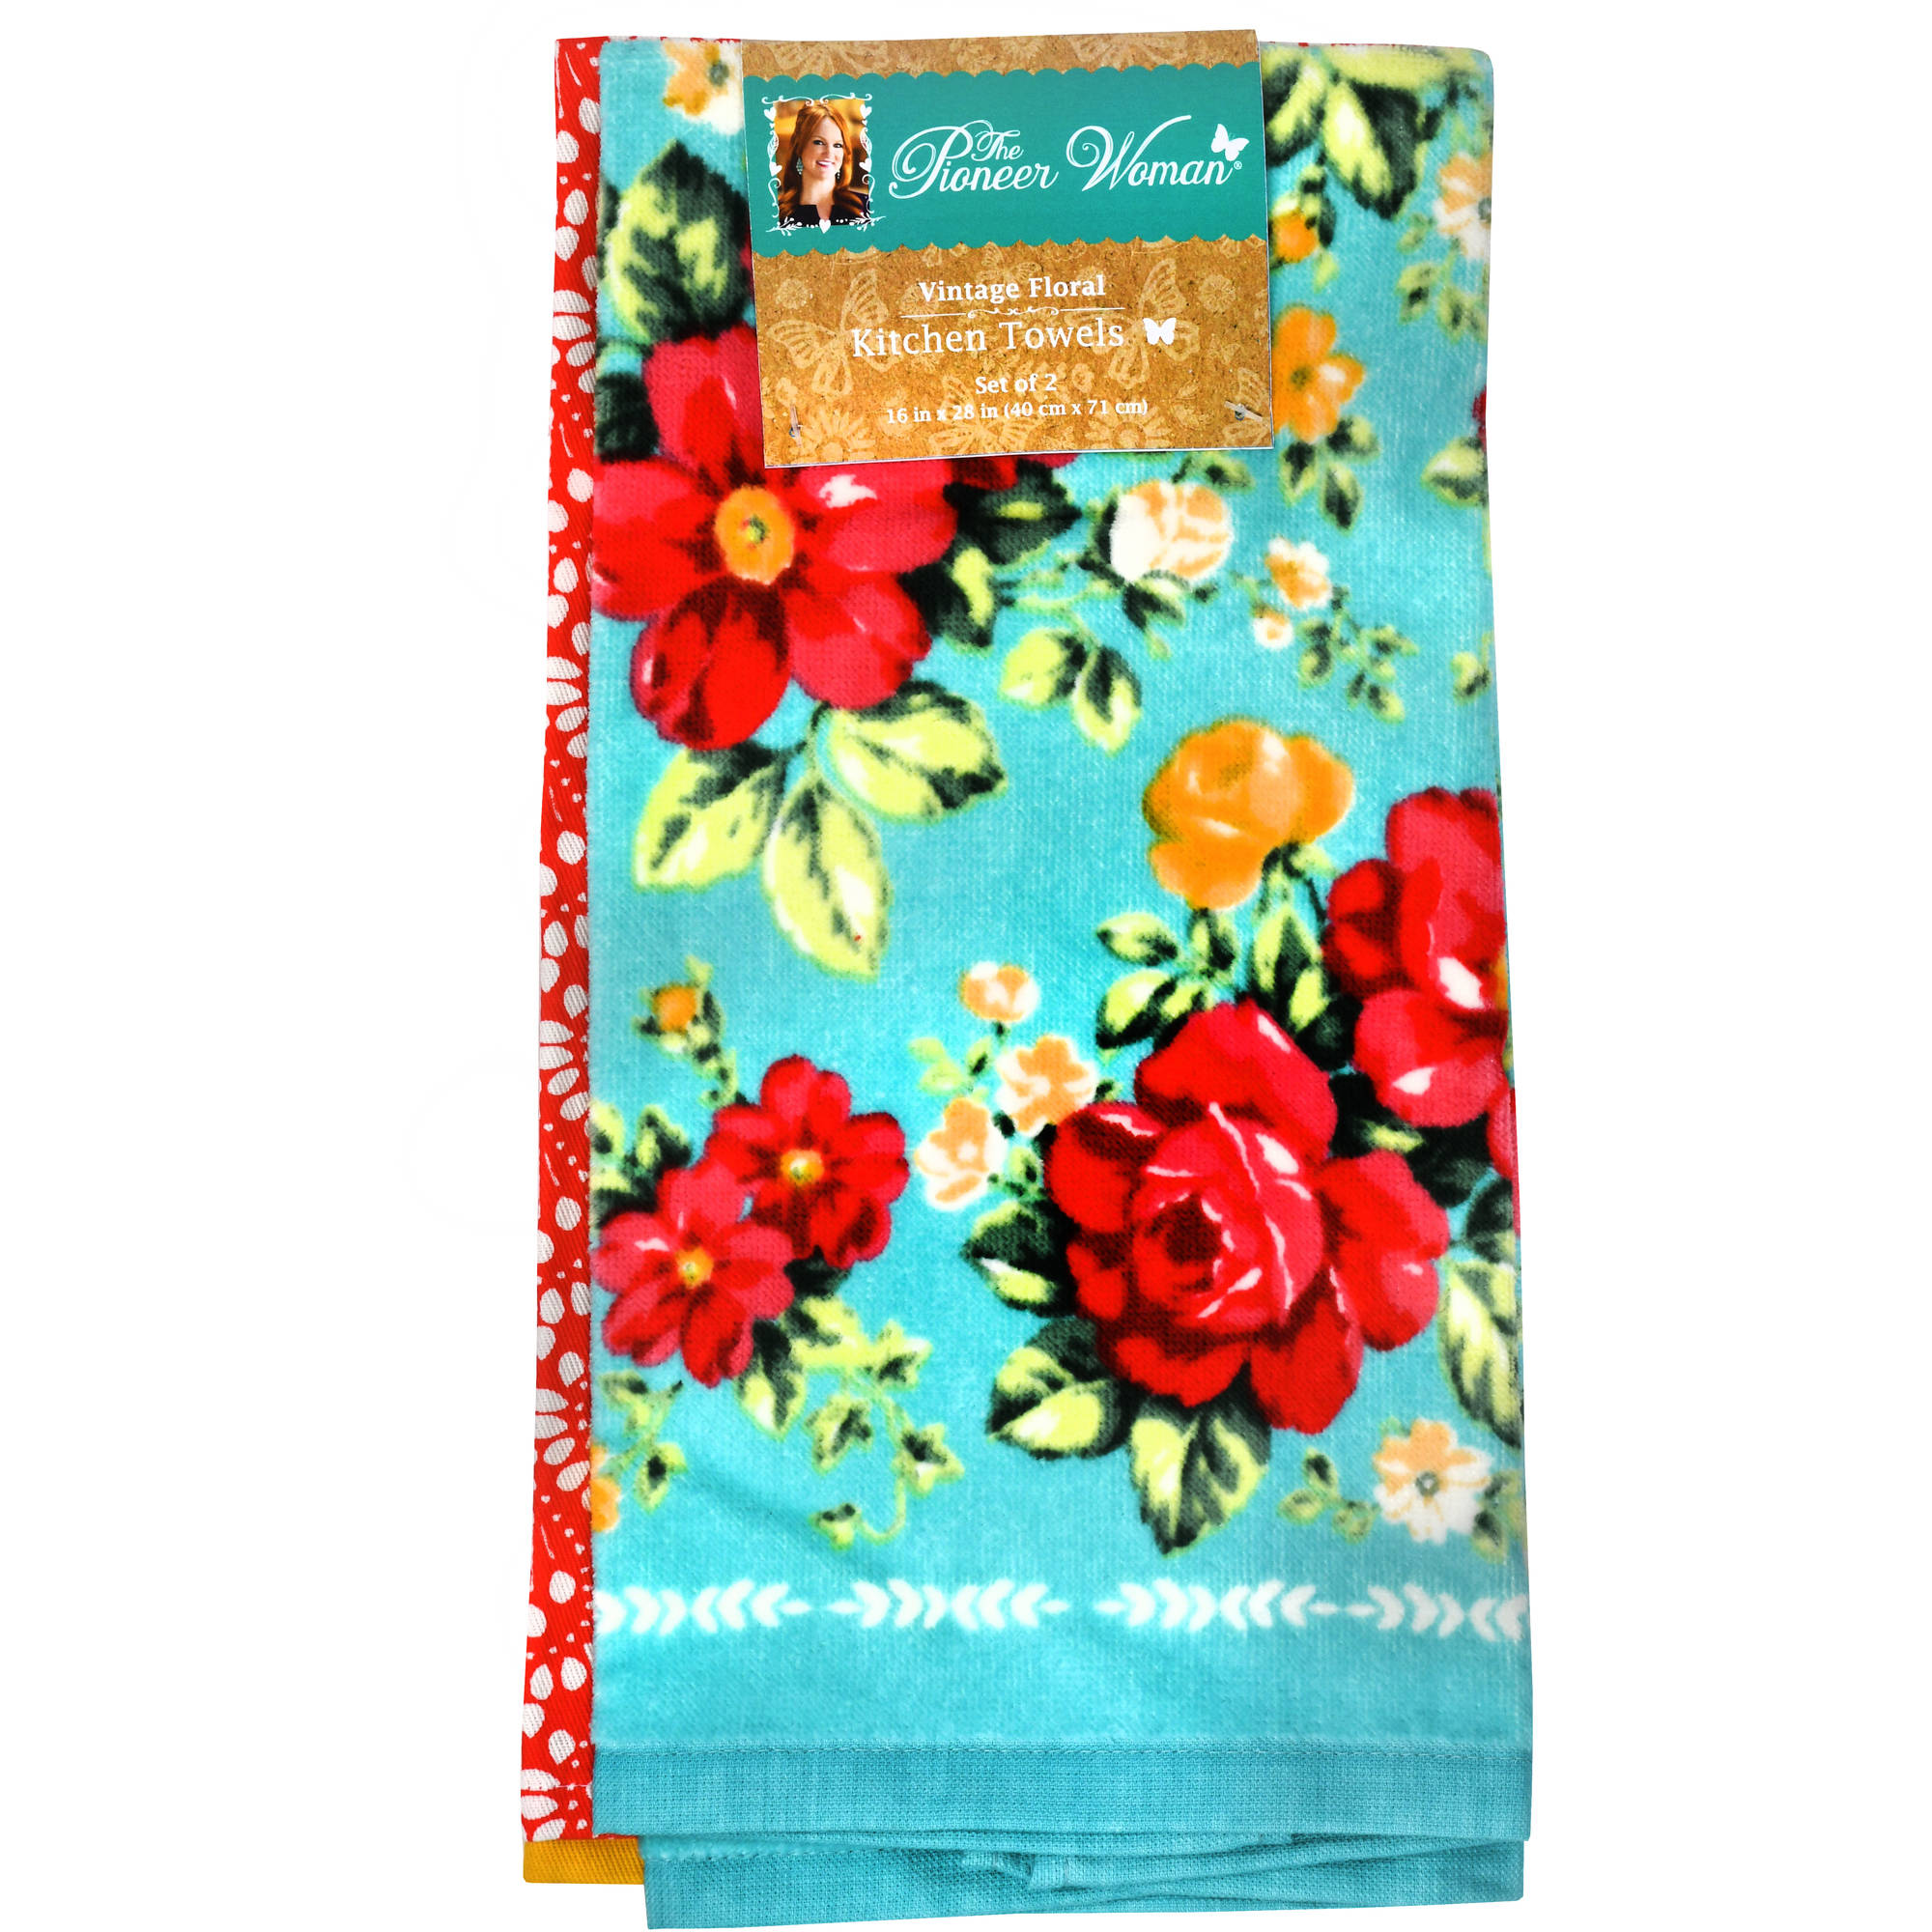 Beau The Pioneer Woman, Vintage Floral 2pk Kitchen Towel Set   Walmart.com